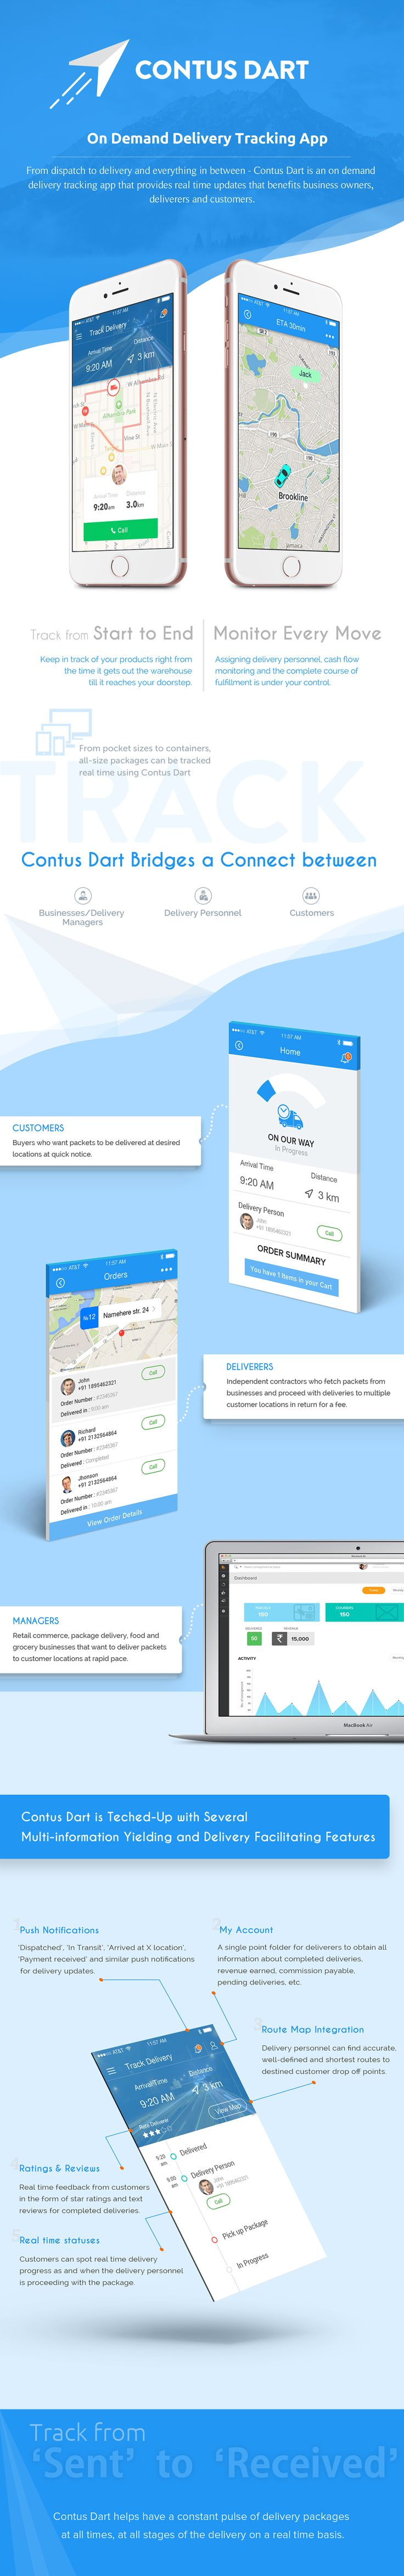 On Demand Delivery Tracking App - Contus Dart on Behance                                                                                                                                                                                 More